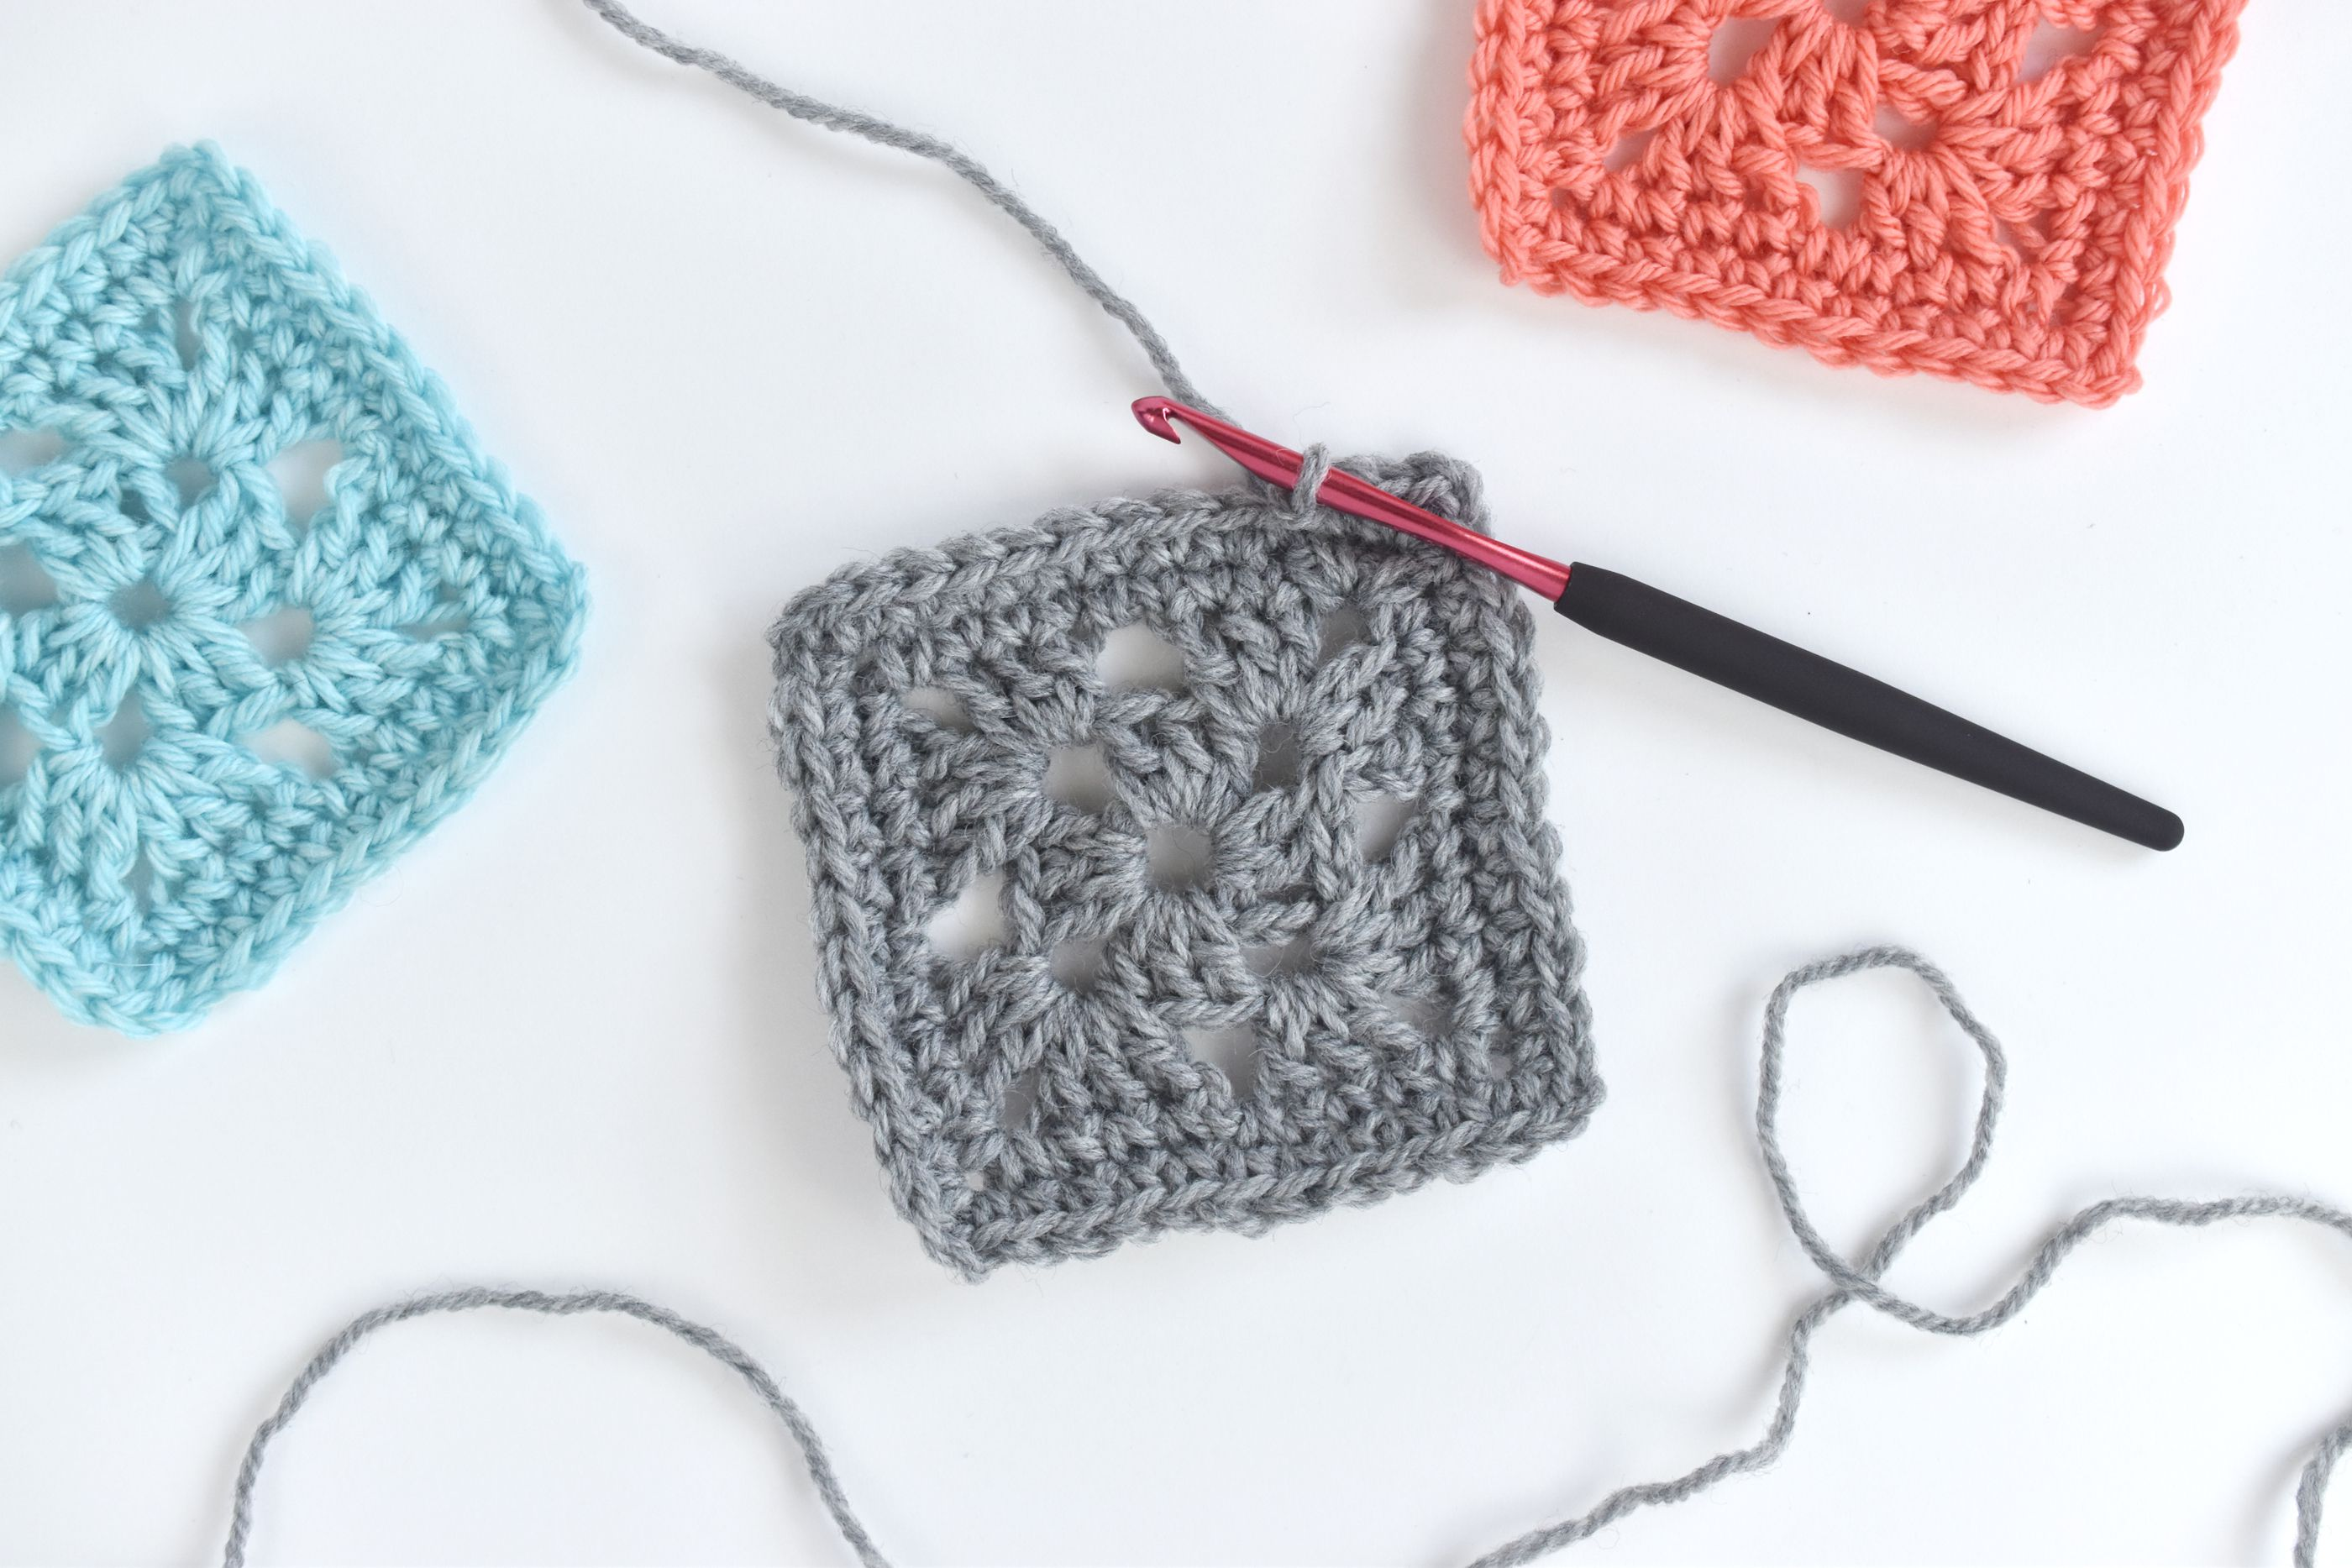 How To Make A Crochet Granny Square